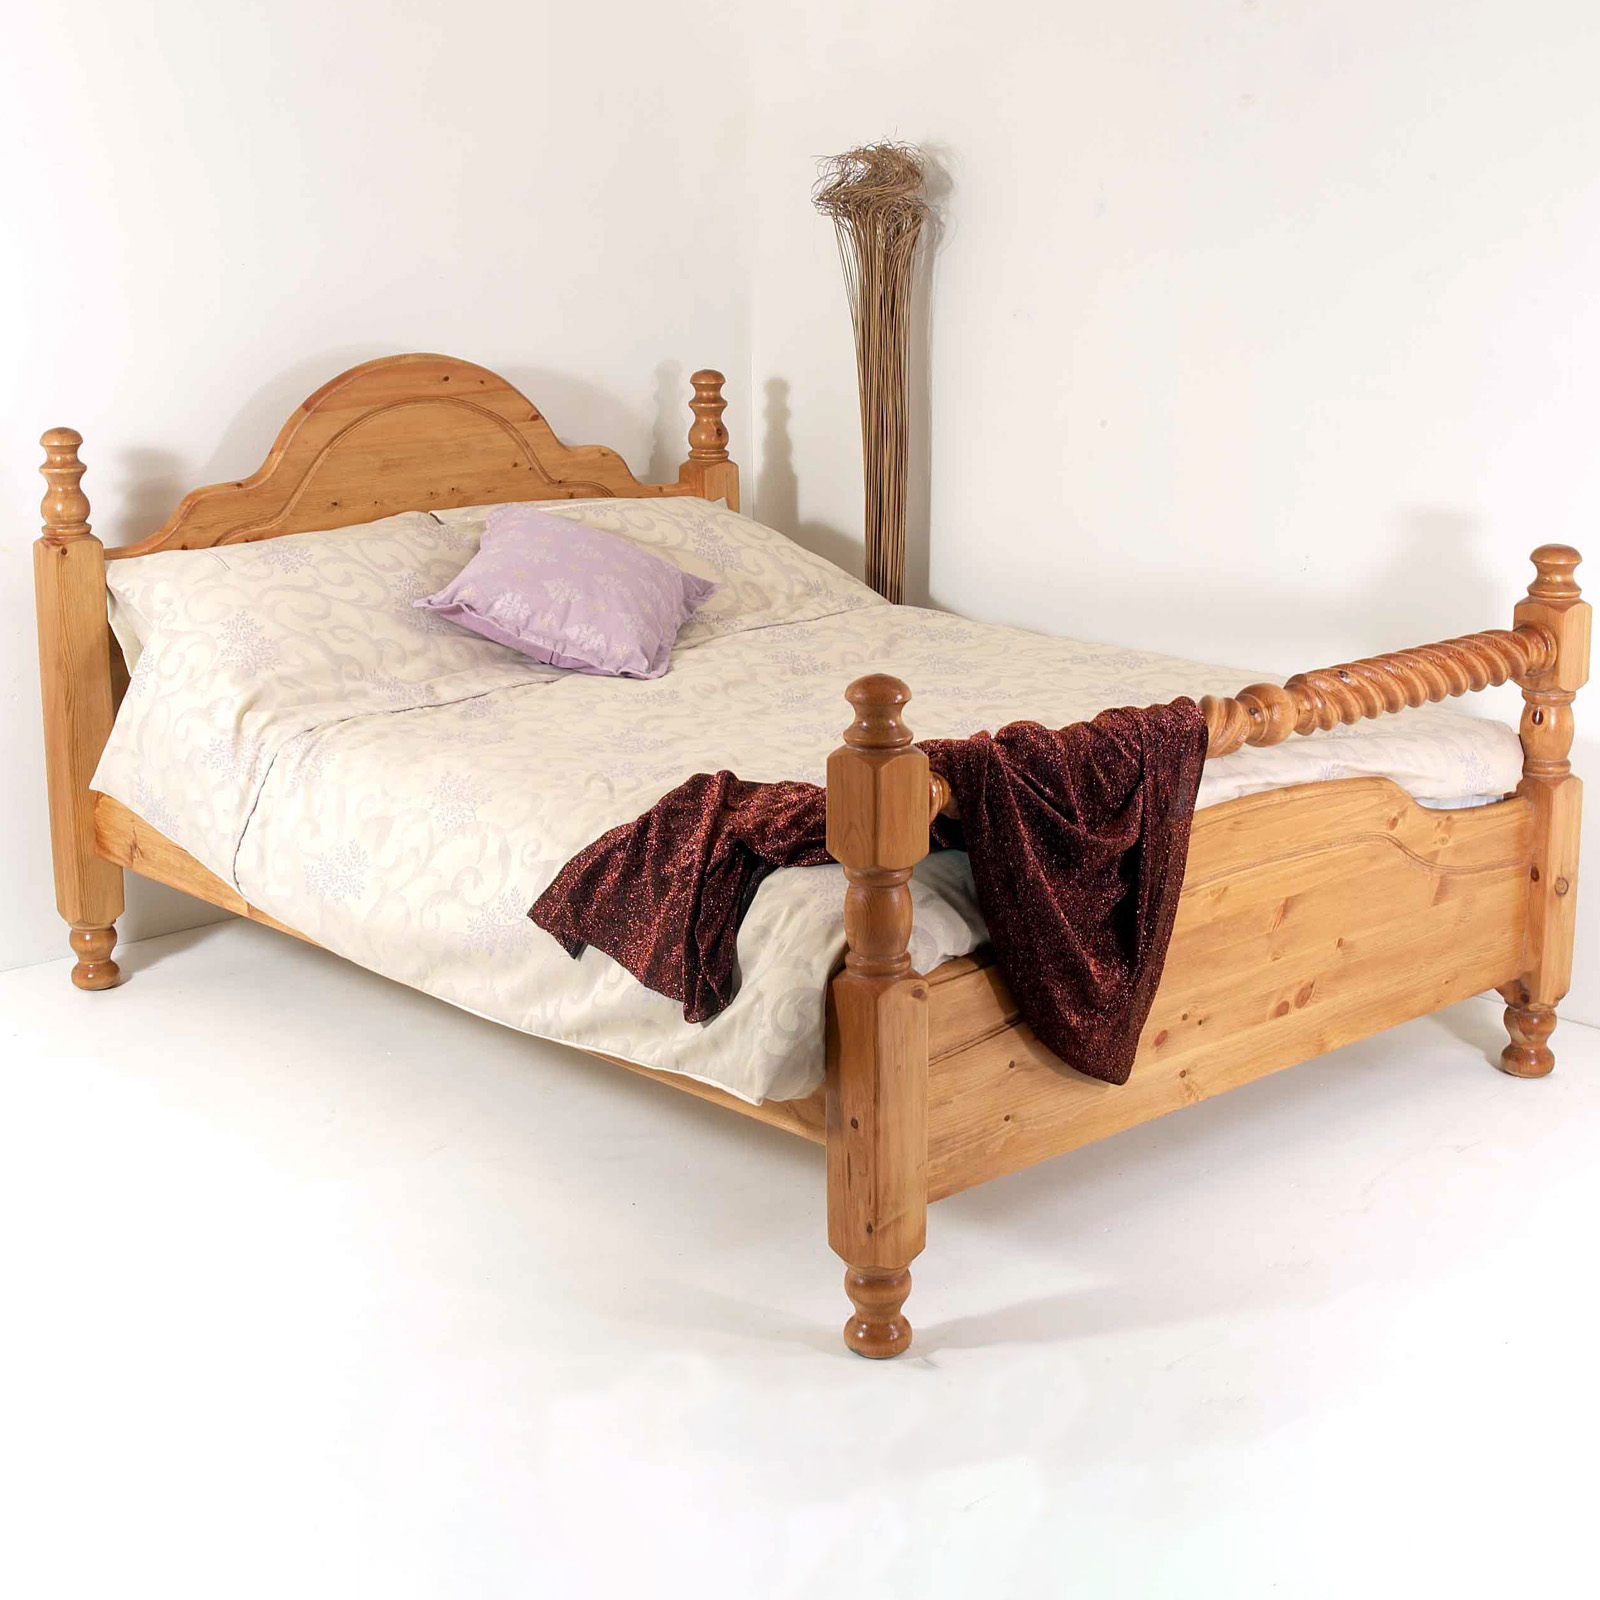 4ft Double Bed Size 4ft Classic Bed Small Double With Barley Twist Rail